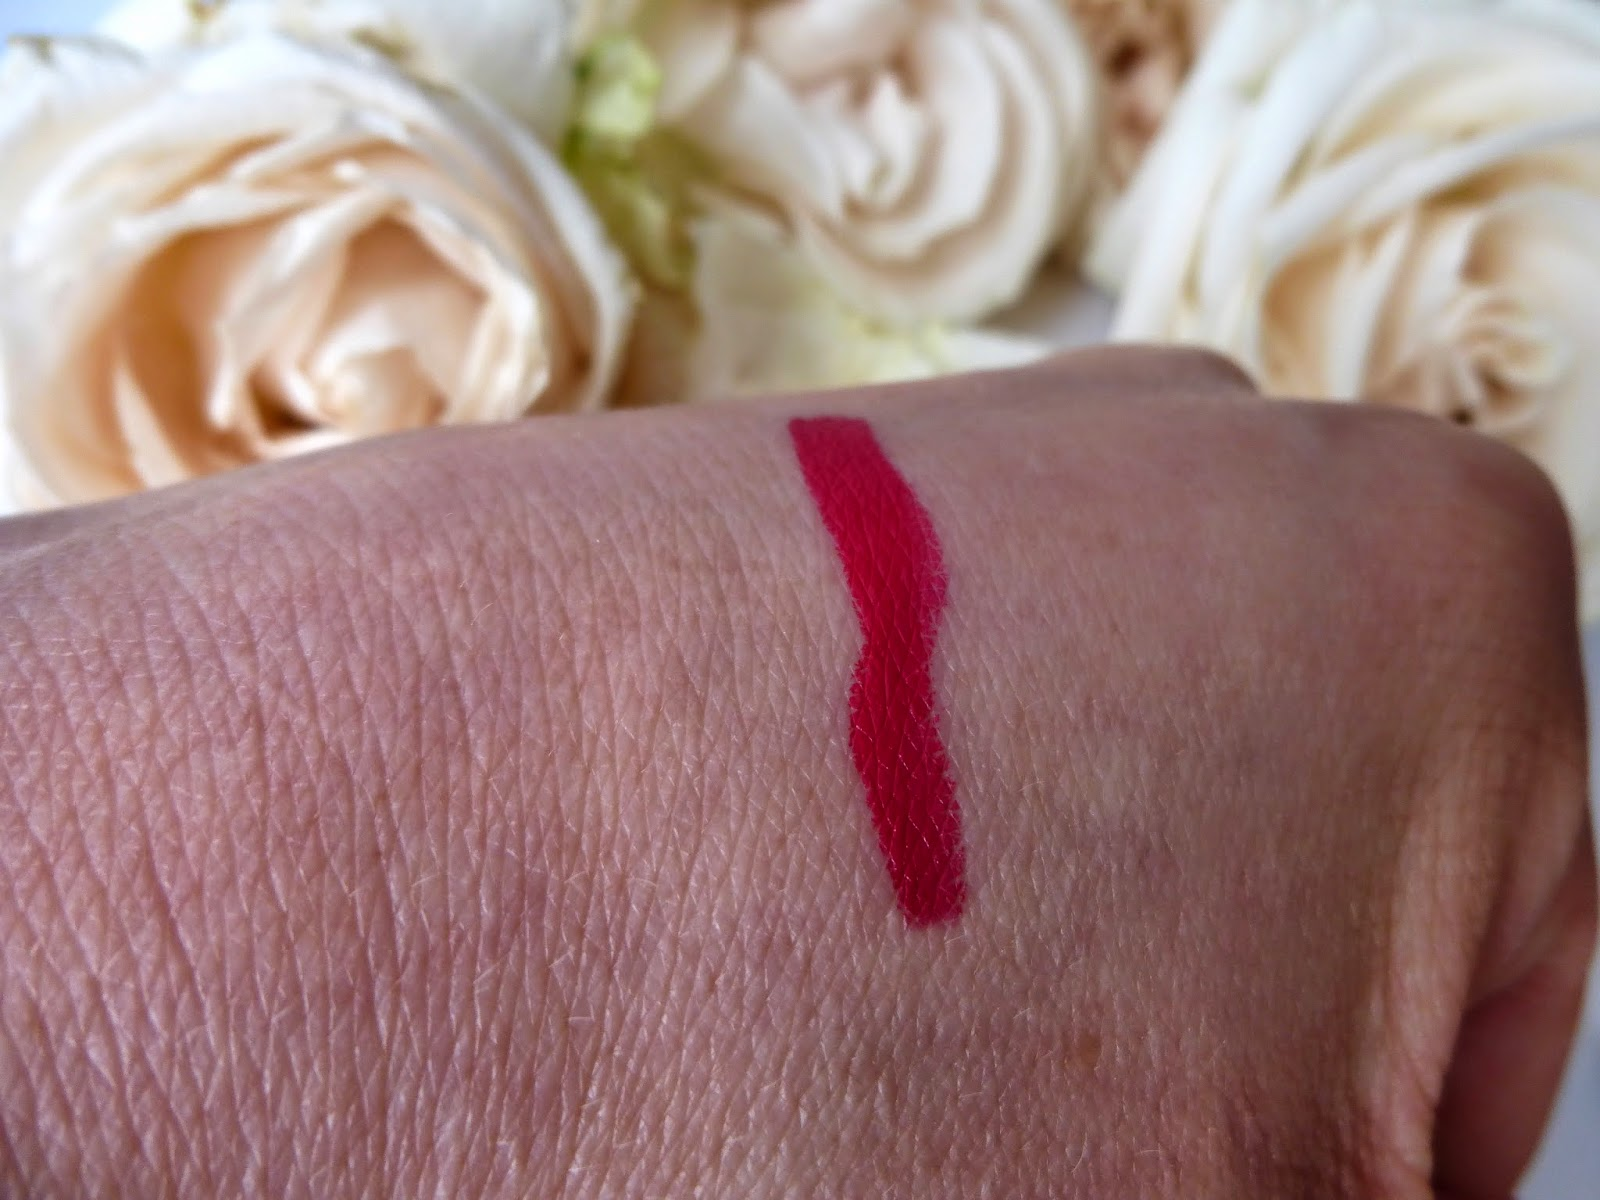 Swatch of Lord & Berry 20100 Shining Lipstick in Cherry